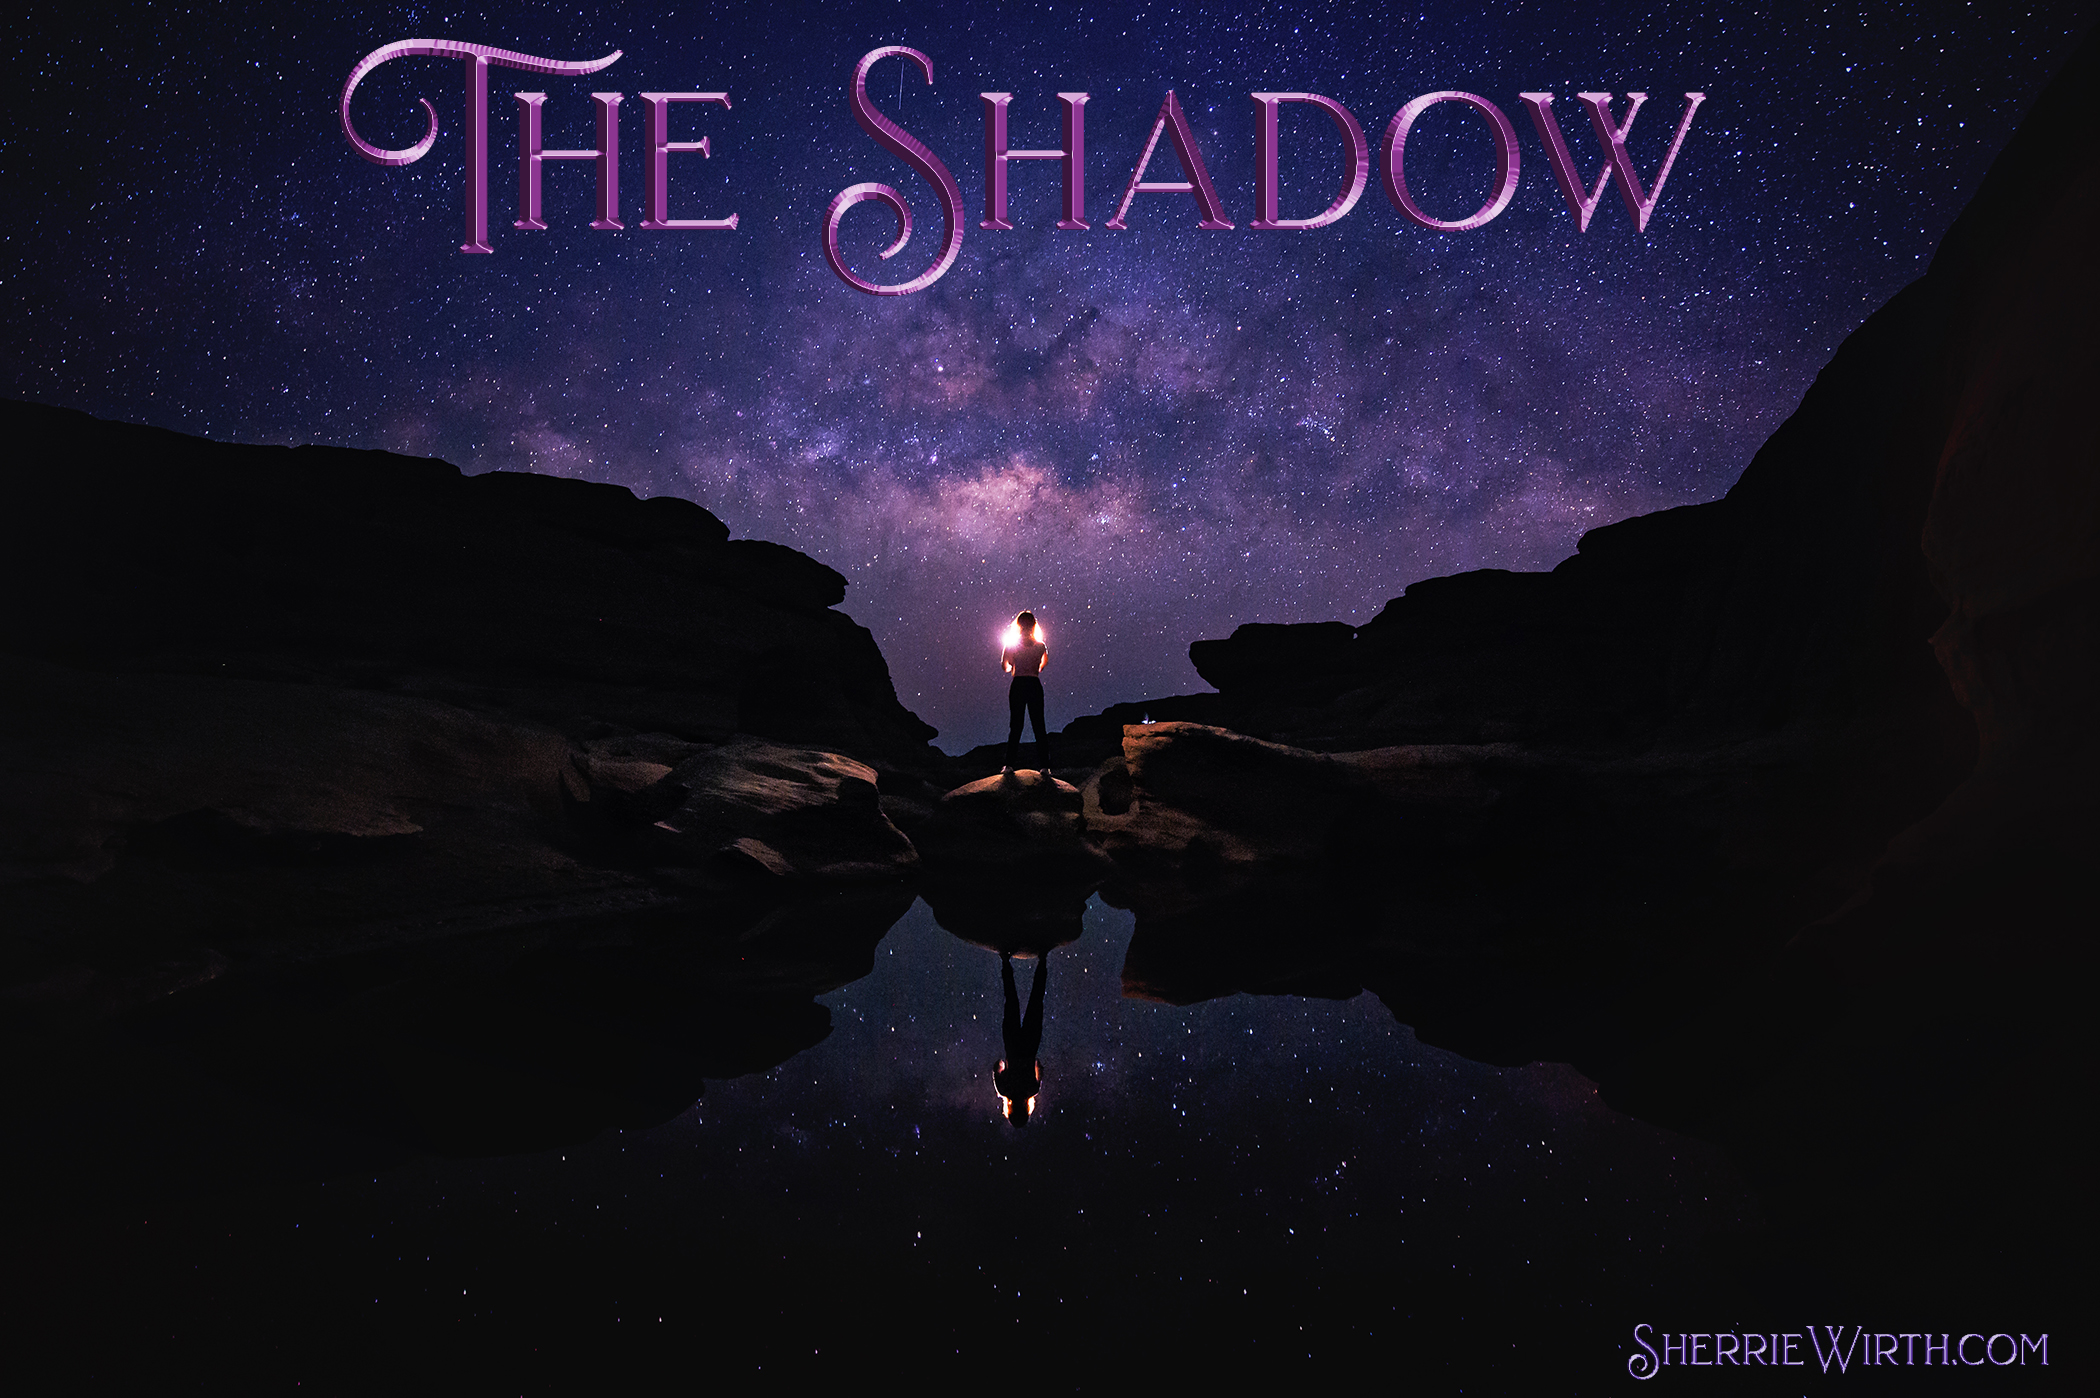 Our Shadow - Loving The Deepest Part of Ourselves | Sherrie Wirth's Psychic Insight & Blog on Your Intuitive Life | Bend, Oregon Psychic, Intuitive, Life Coach & Spiritual Counselor